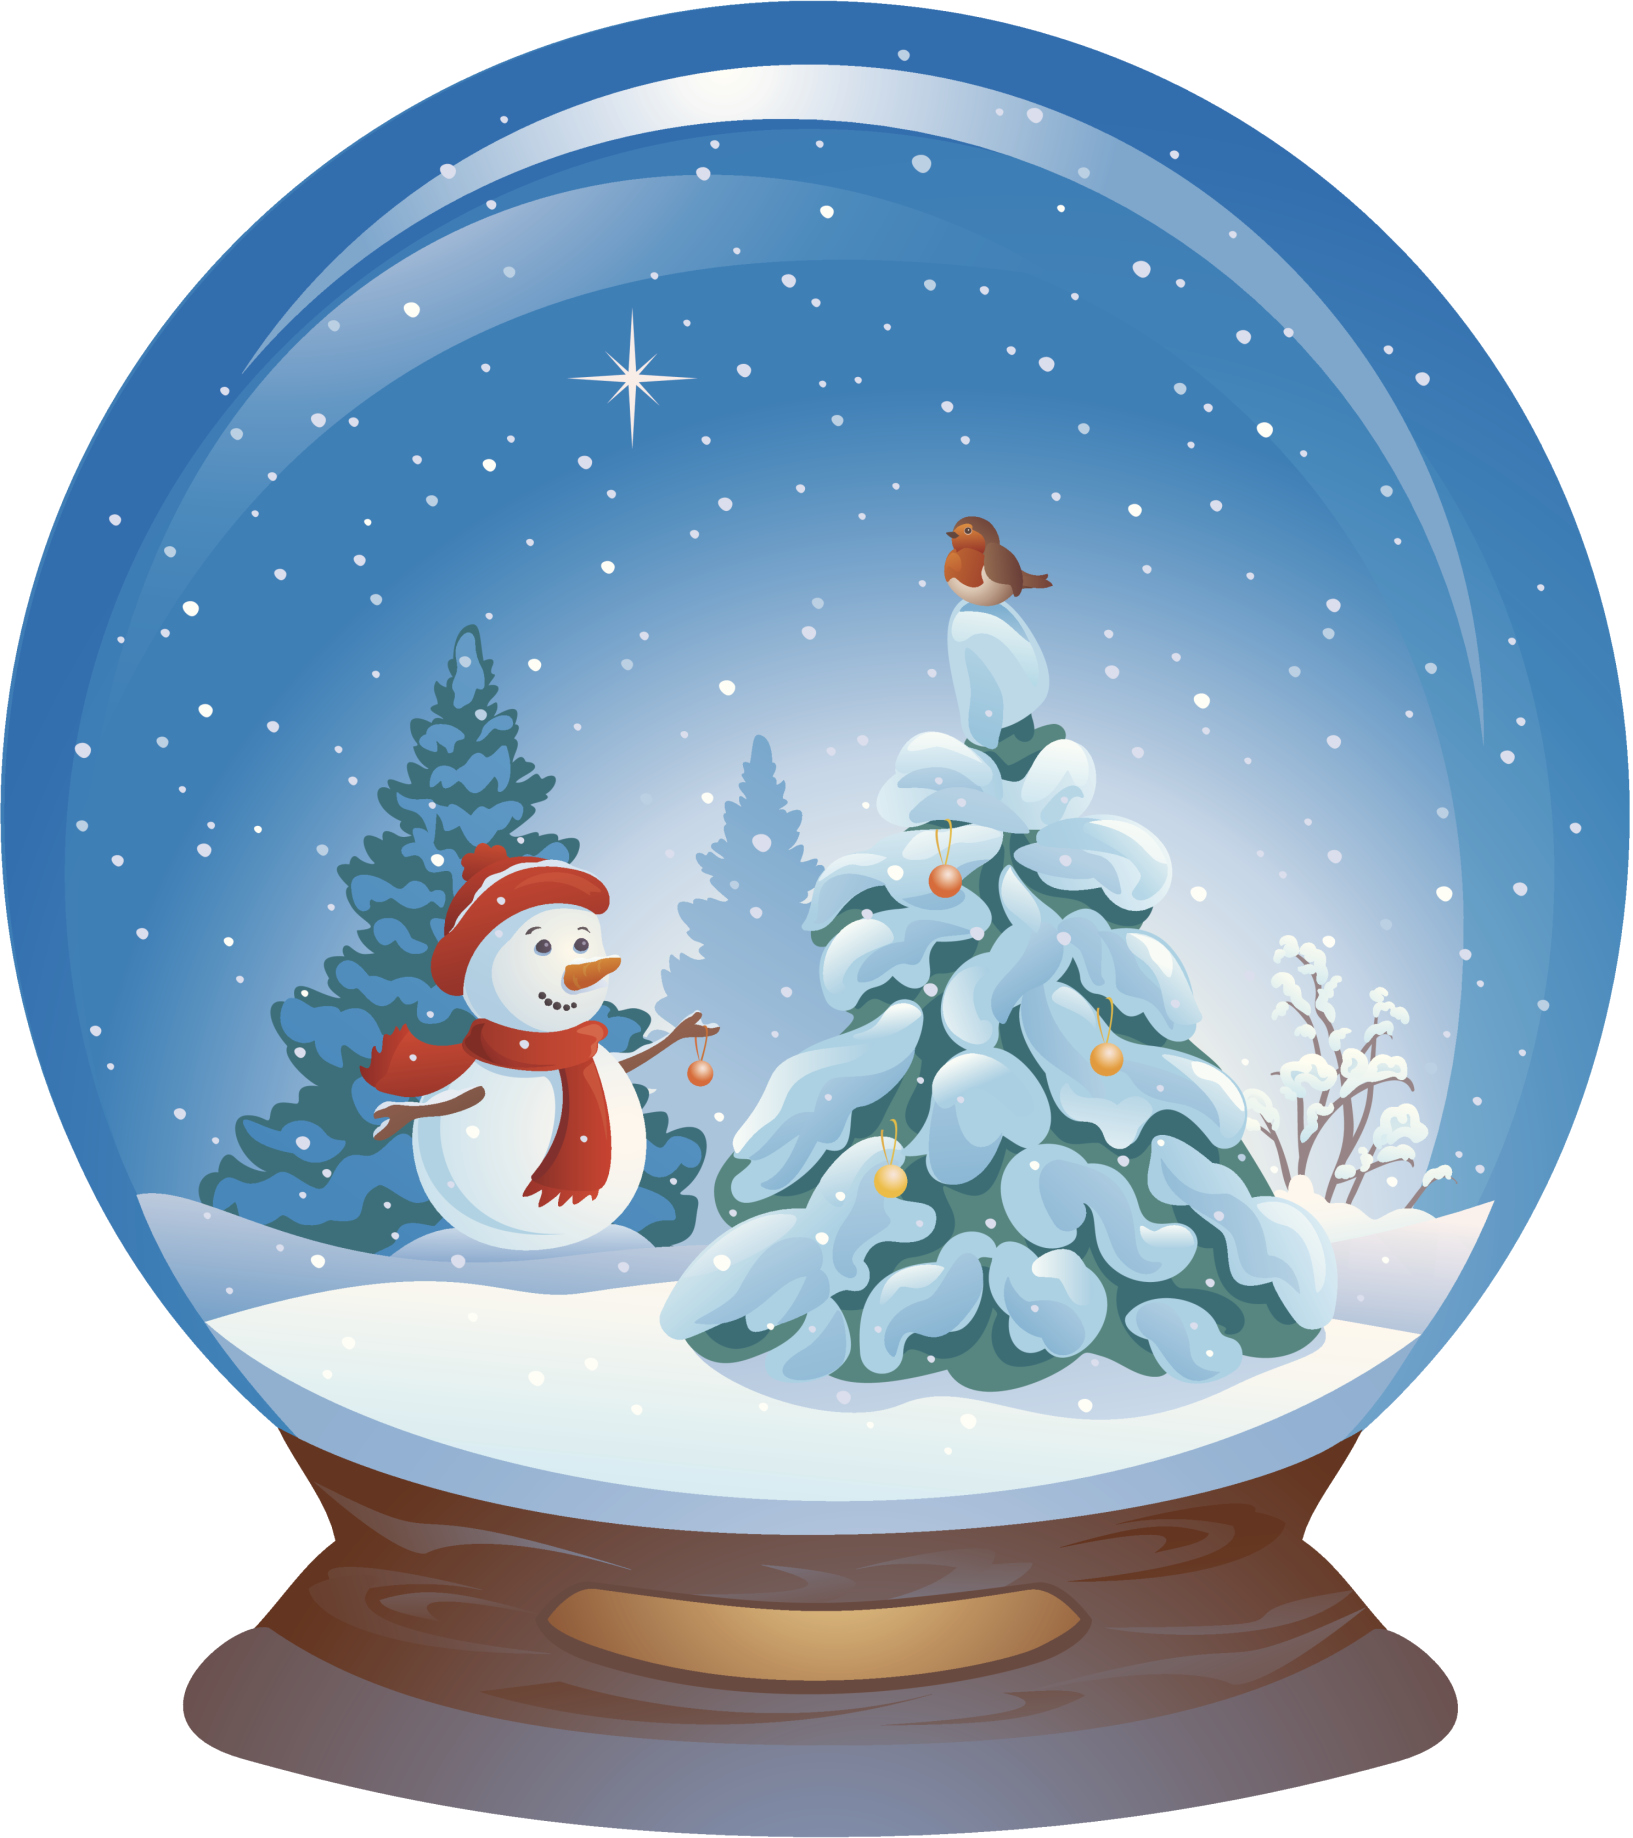 Snowman Blue Ball Claus Illustration Crystal Santa PNG Image